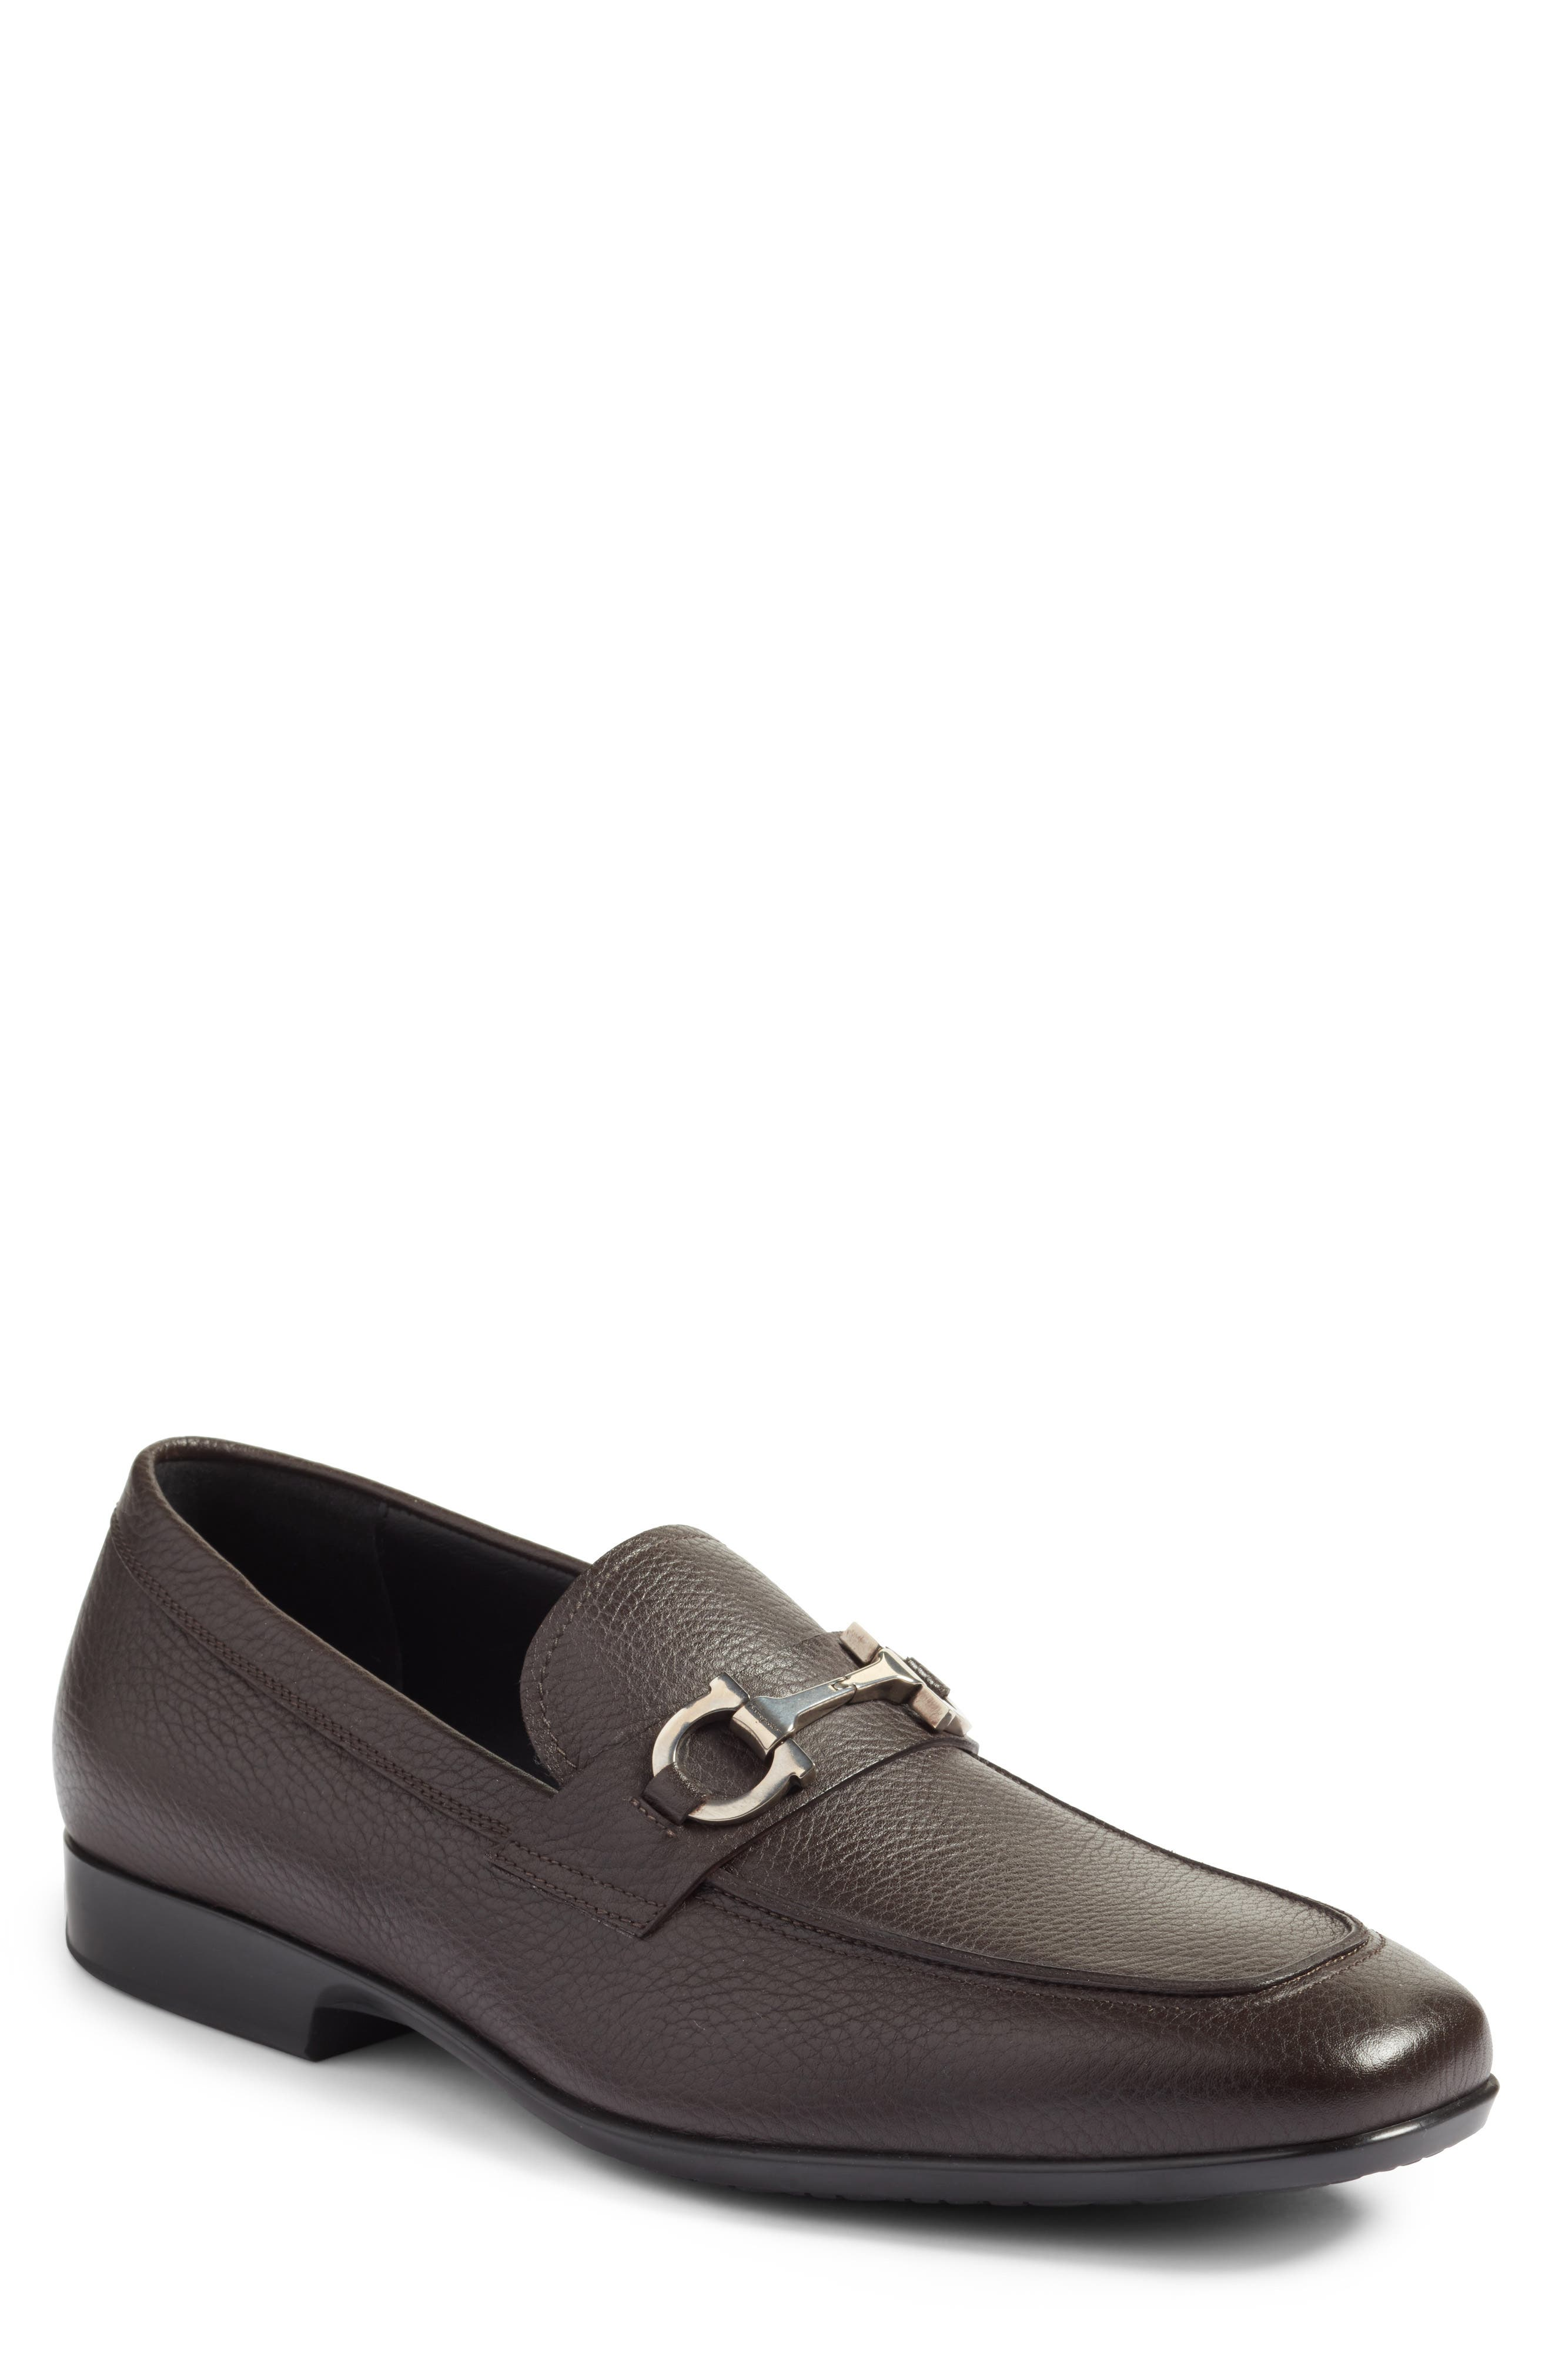 Bit Loafer,                             Main thumbnail 1, color,                             Hickory Leather